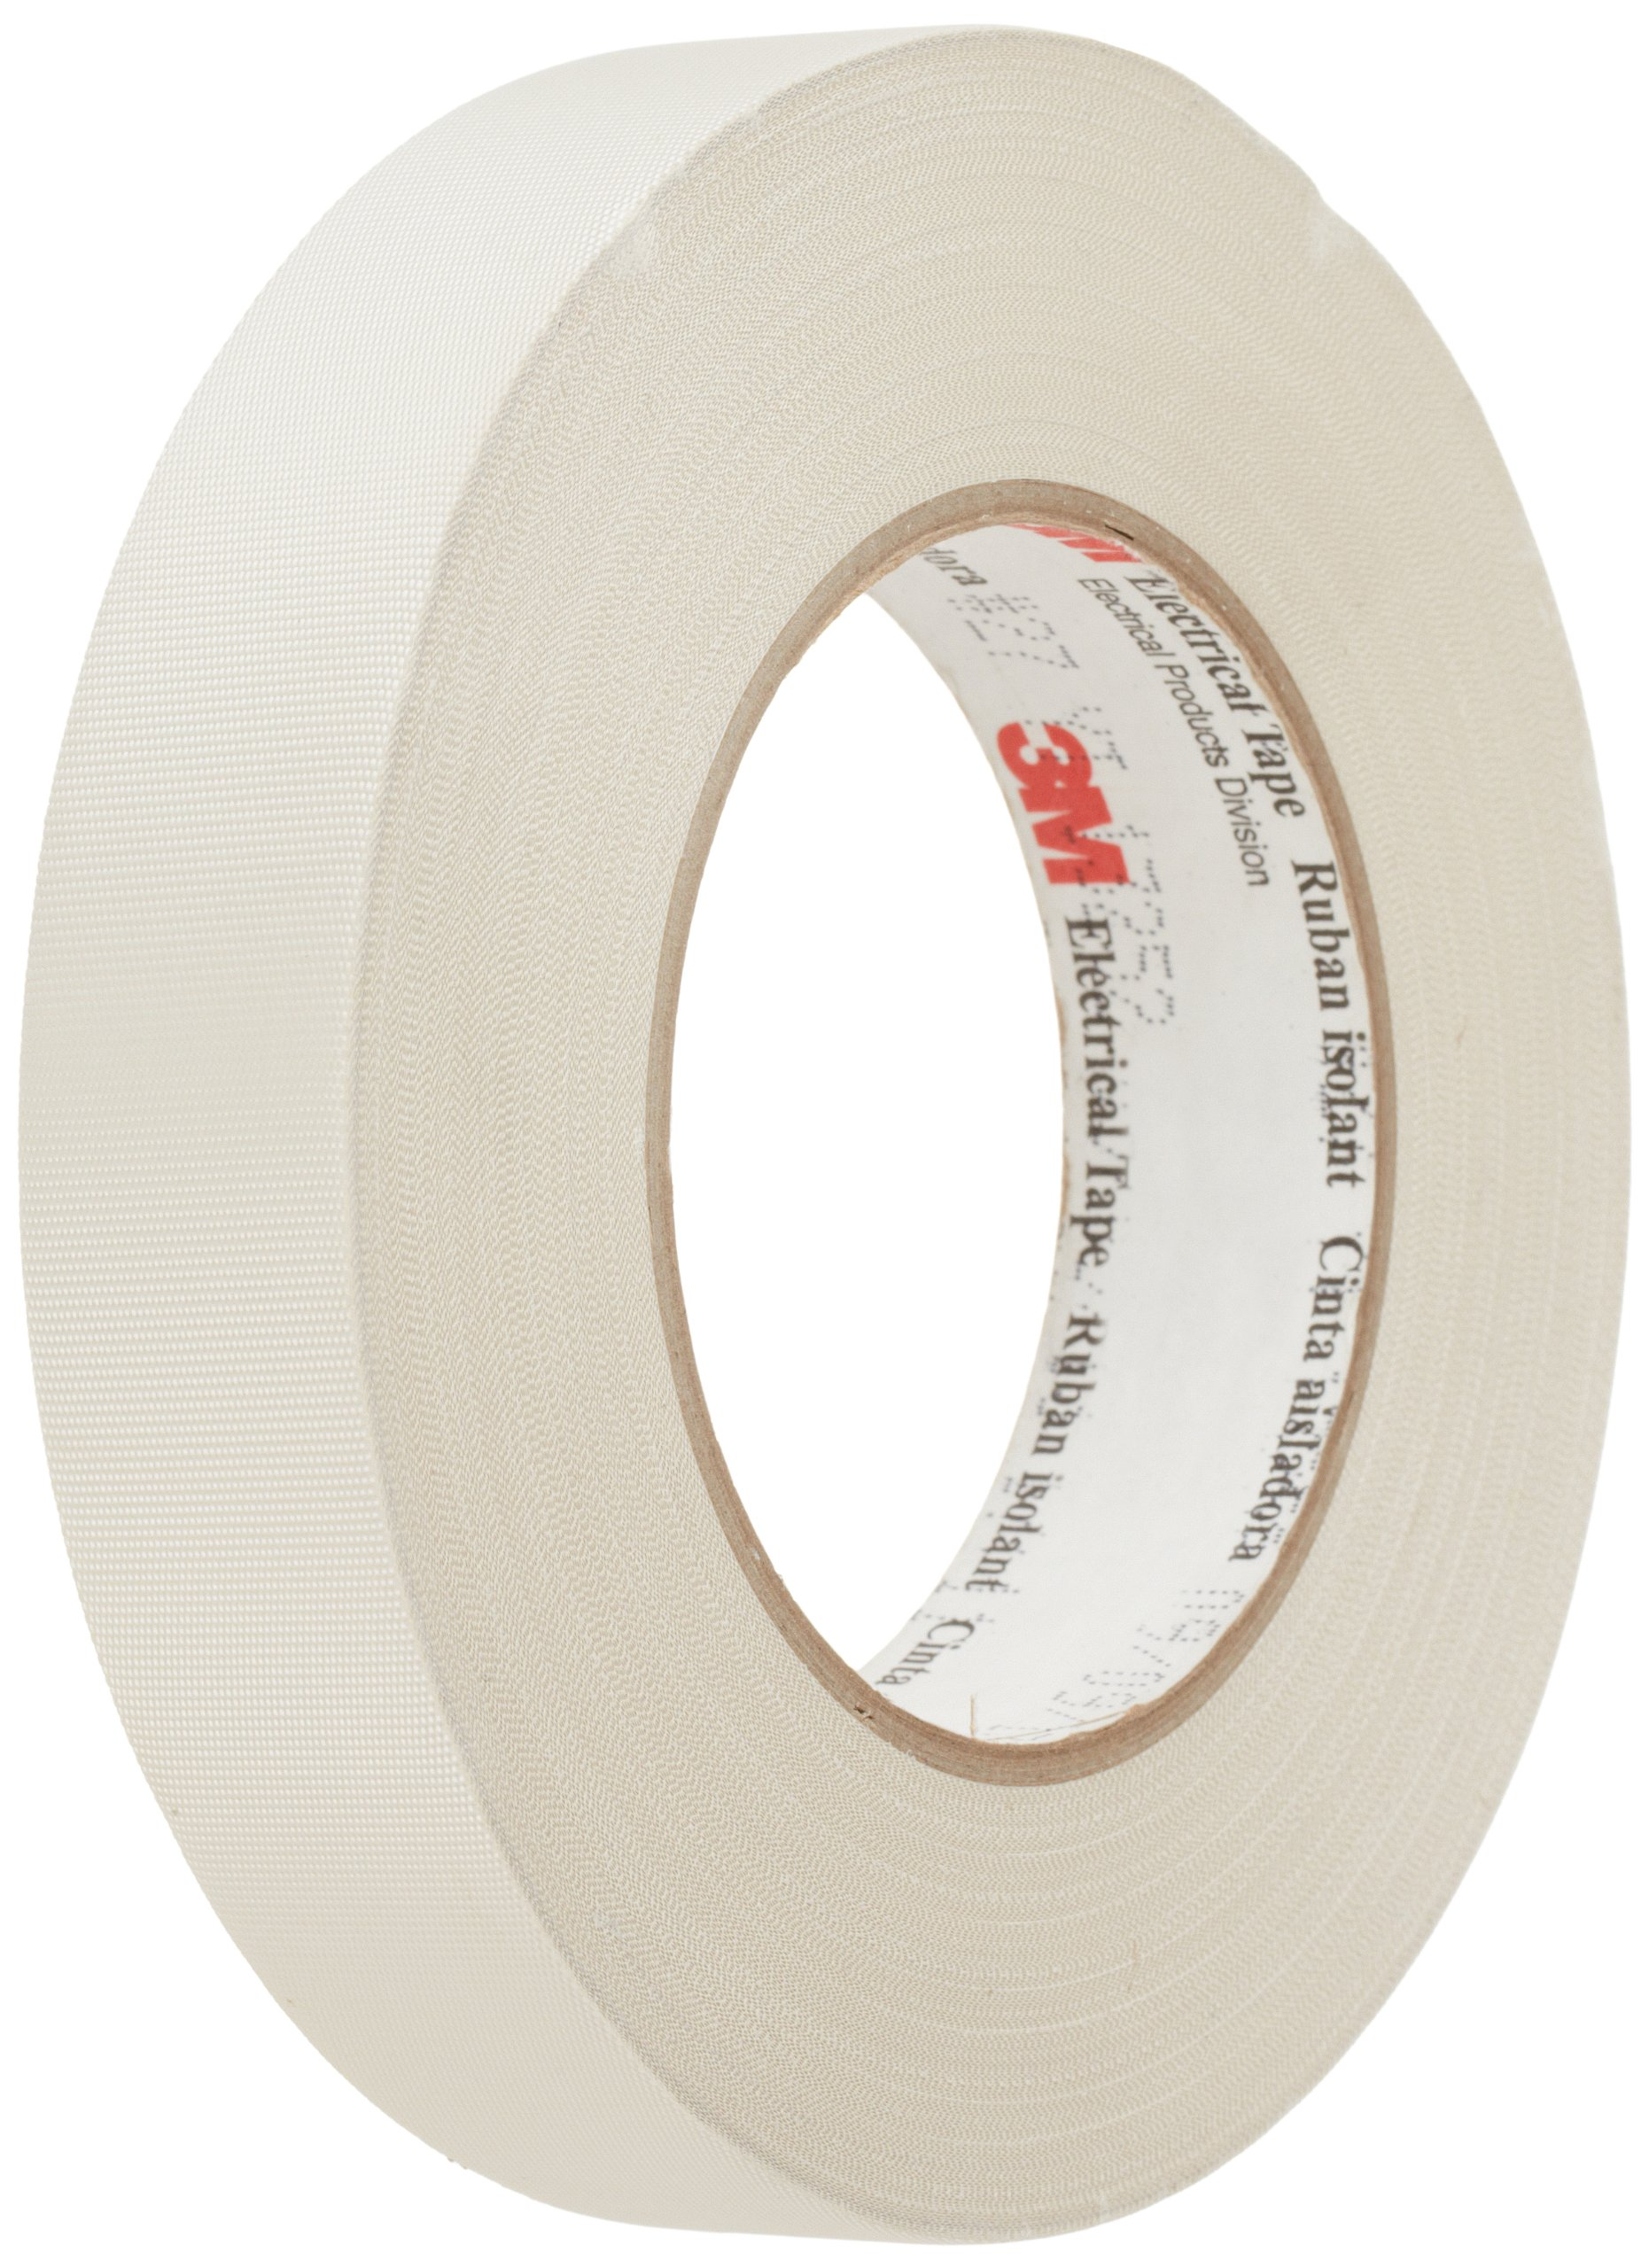 3M 27 Cloth Electrical Tape, 1'' Width x 60yd Length (1 roll)